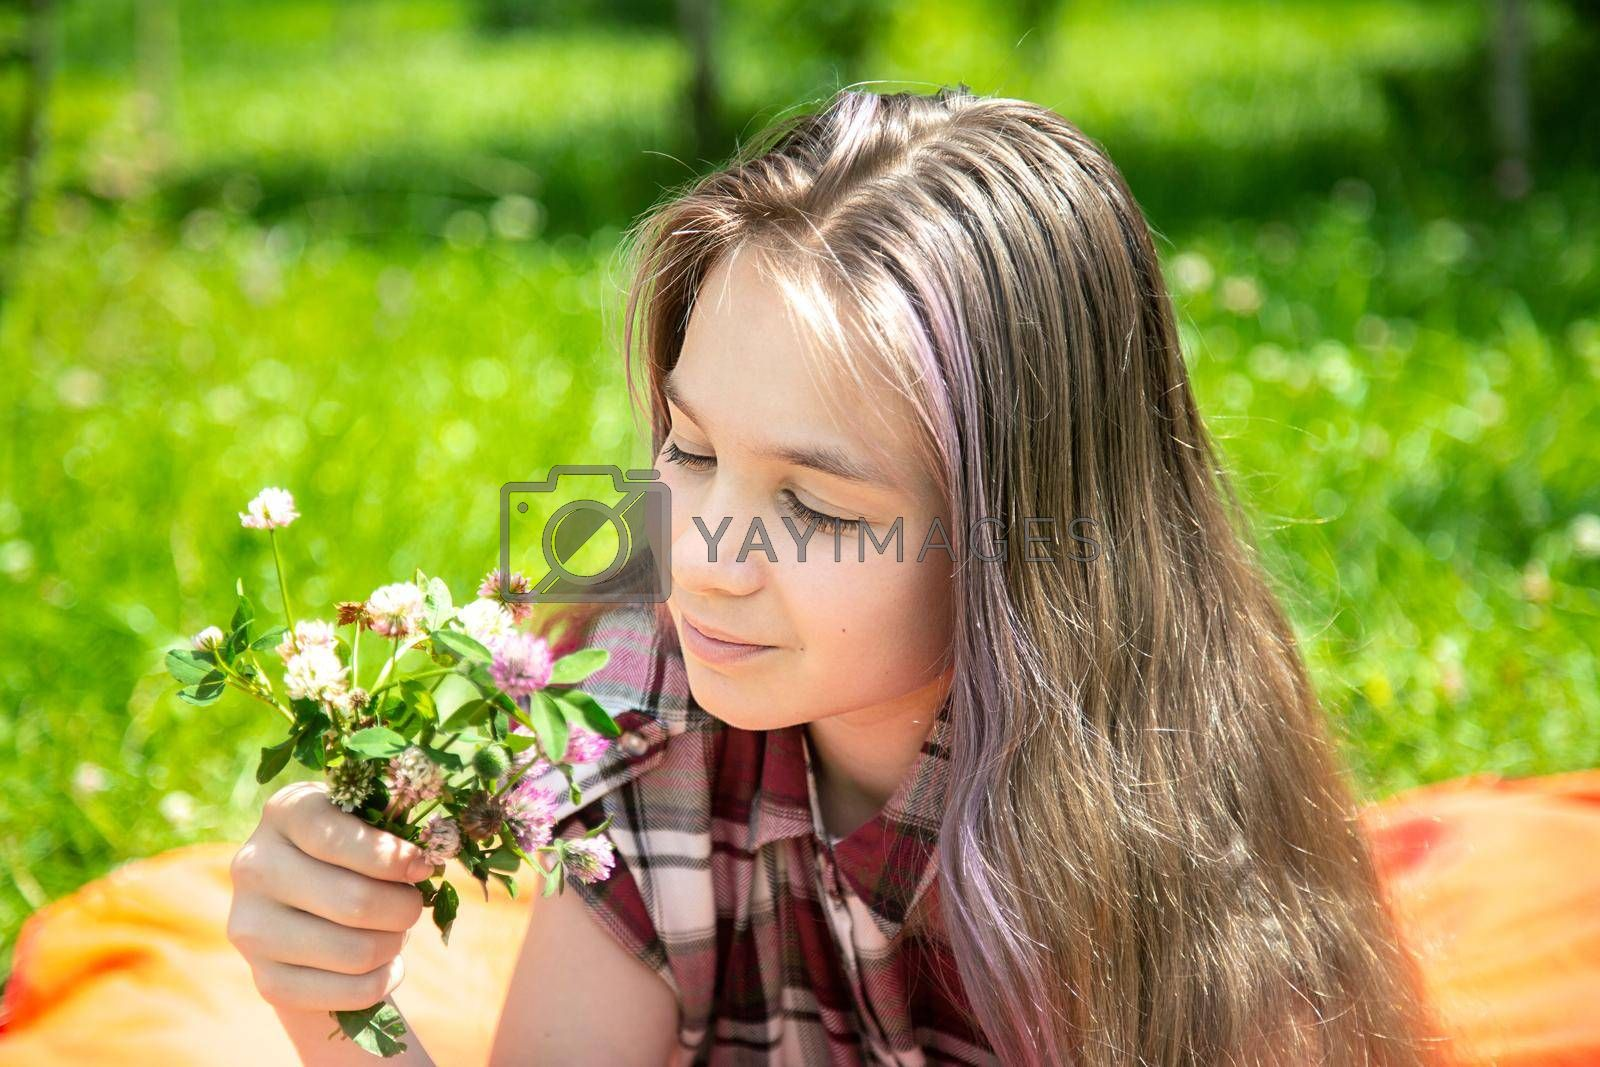 A young girl of 15 years old Caucasian appearance enjoys the sun and the weather and a bouquet of wild flowers lying on the lawn in the park on a summer day. The girl is dressed in a plaid shirt